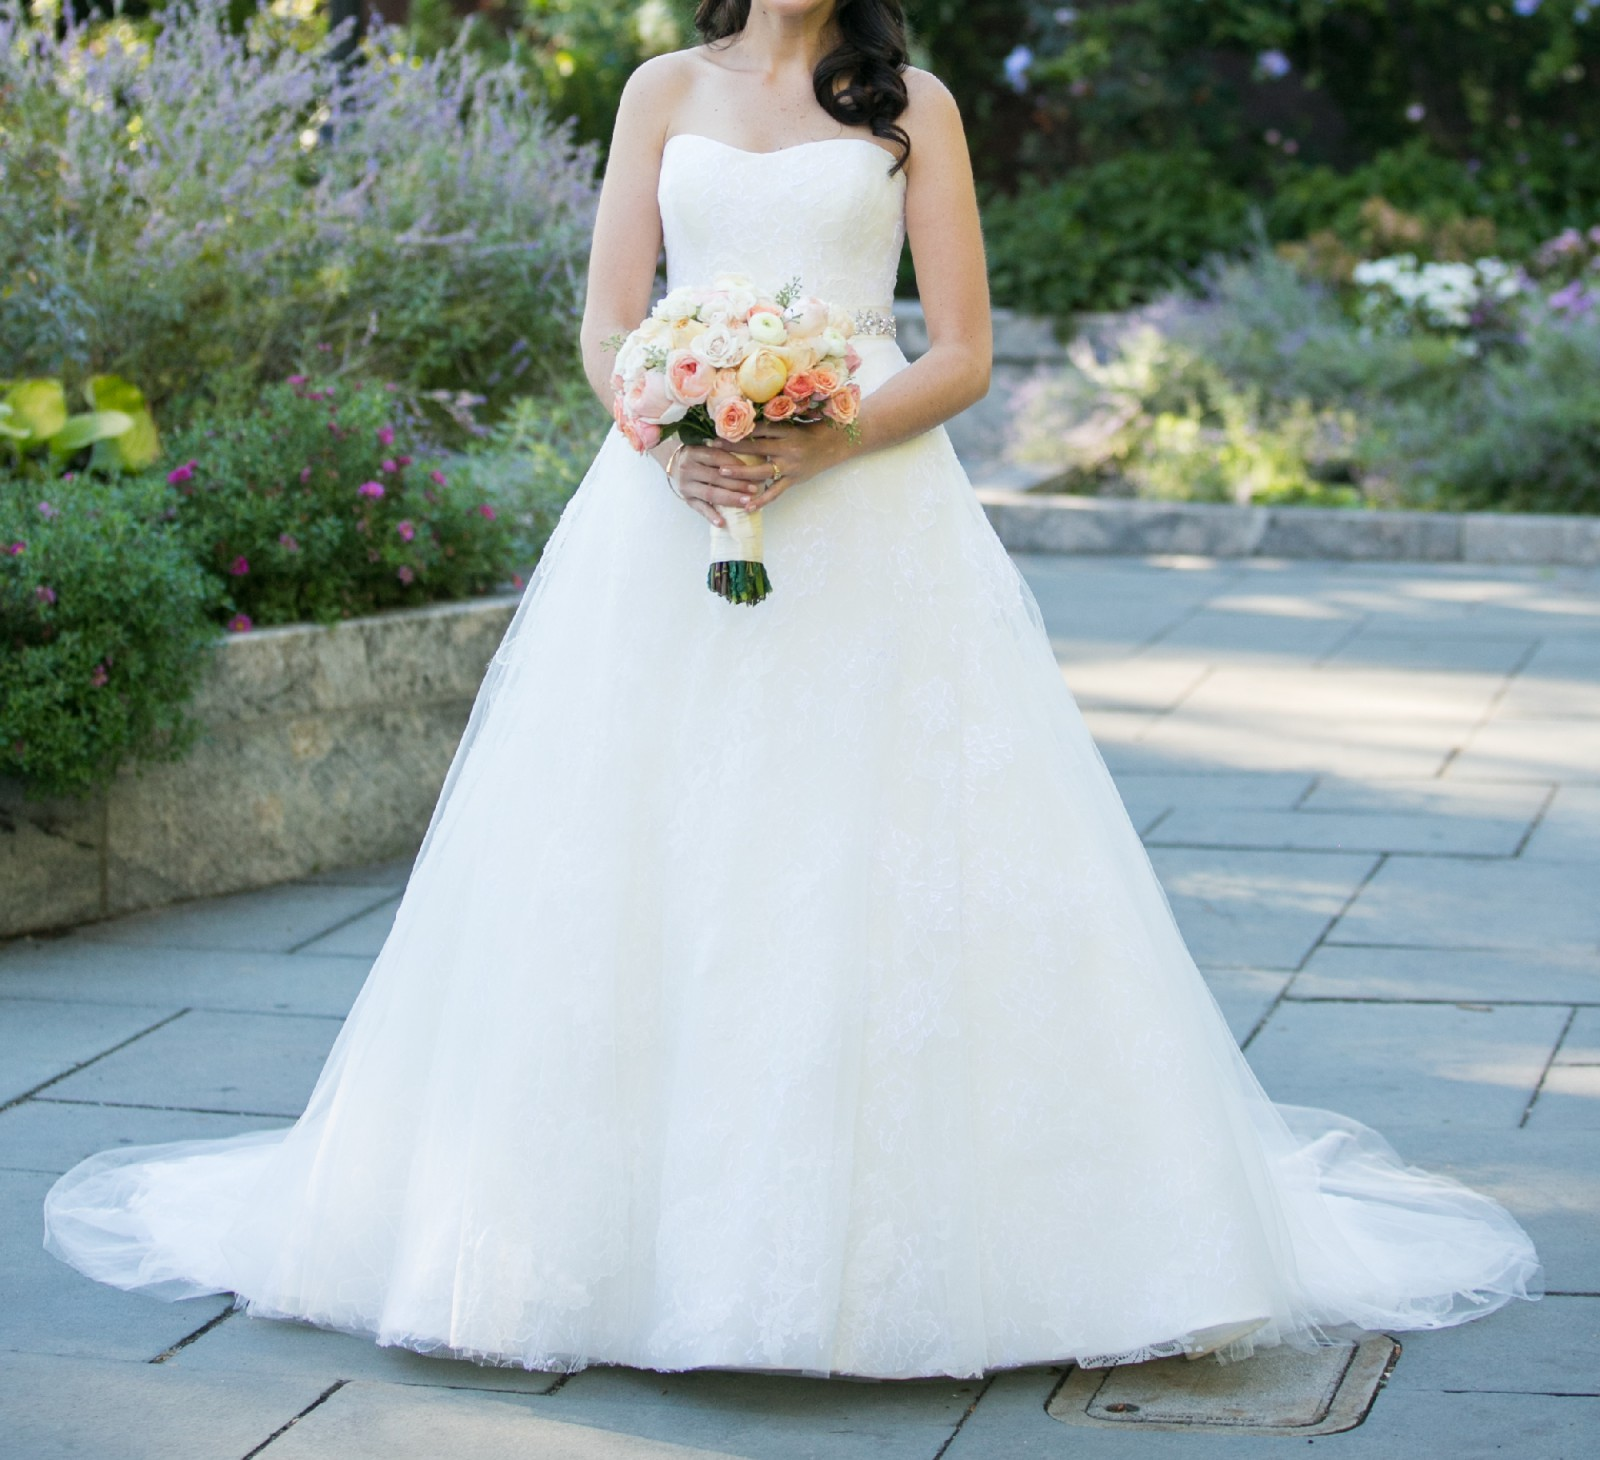 Preowned Wedding Gown: Vera Wang Pandora Preowned Wedding Dress On Sale 83% Off